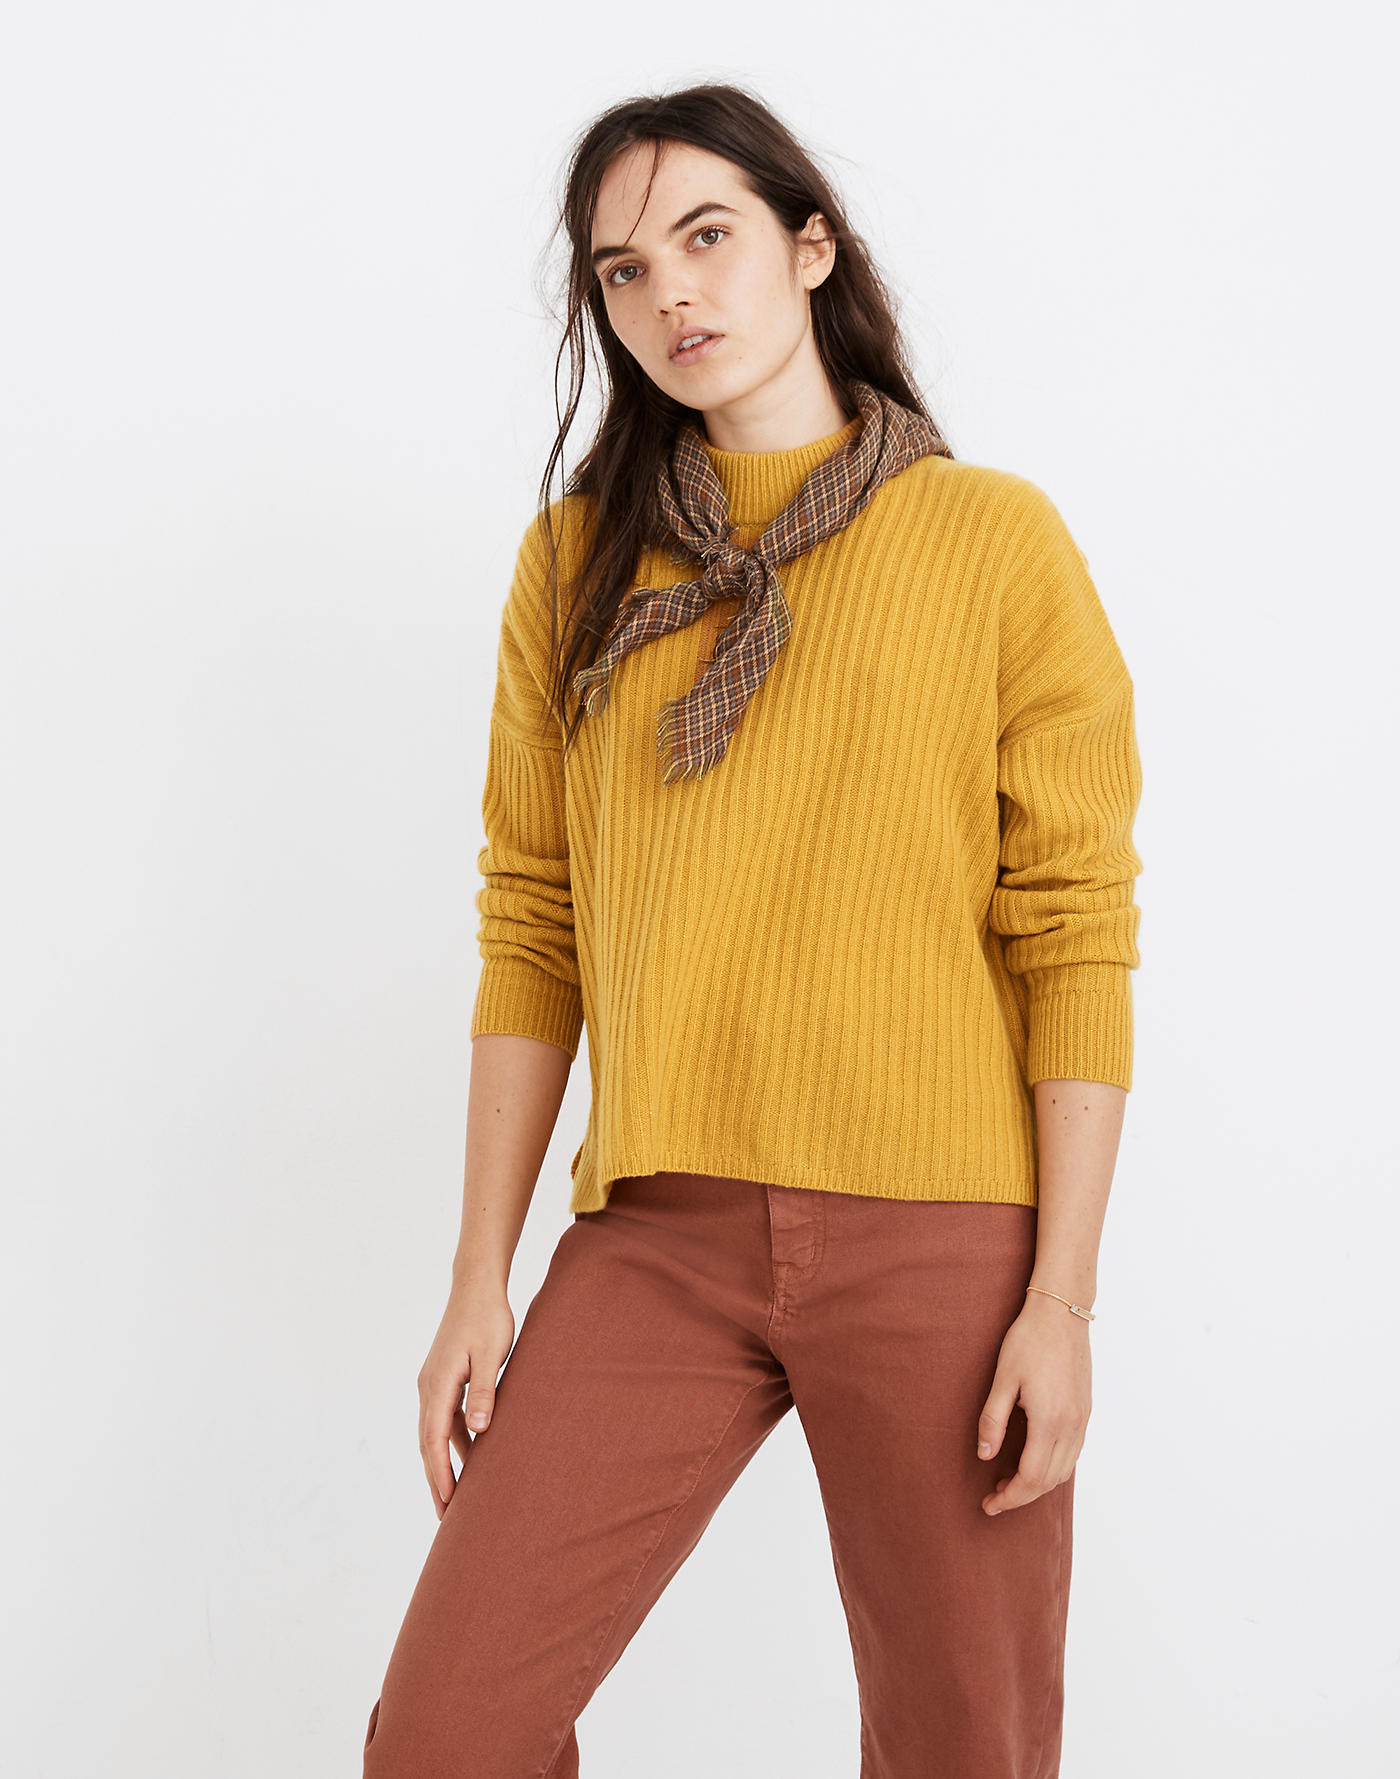 a model in a mustard yellow sweater